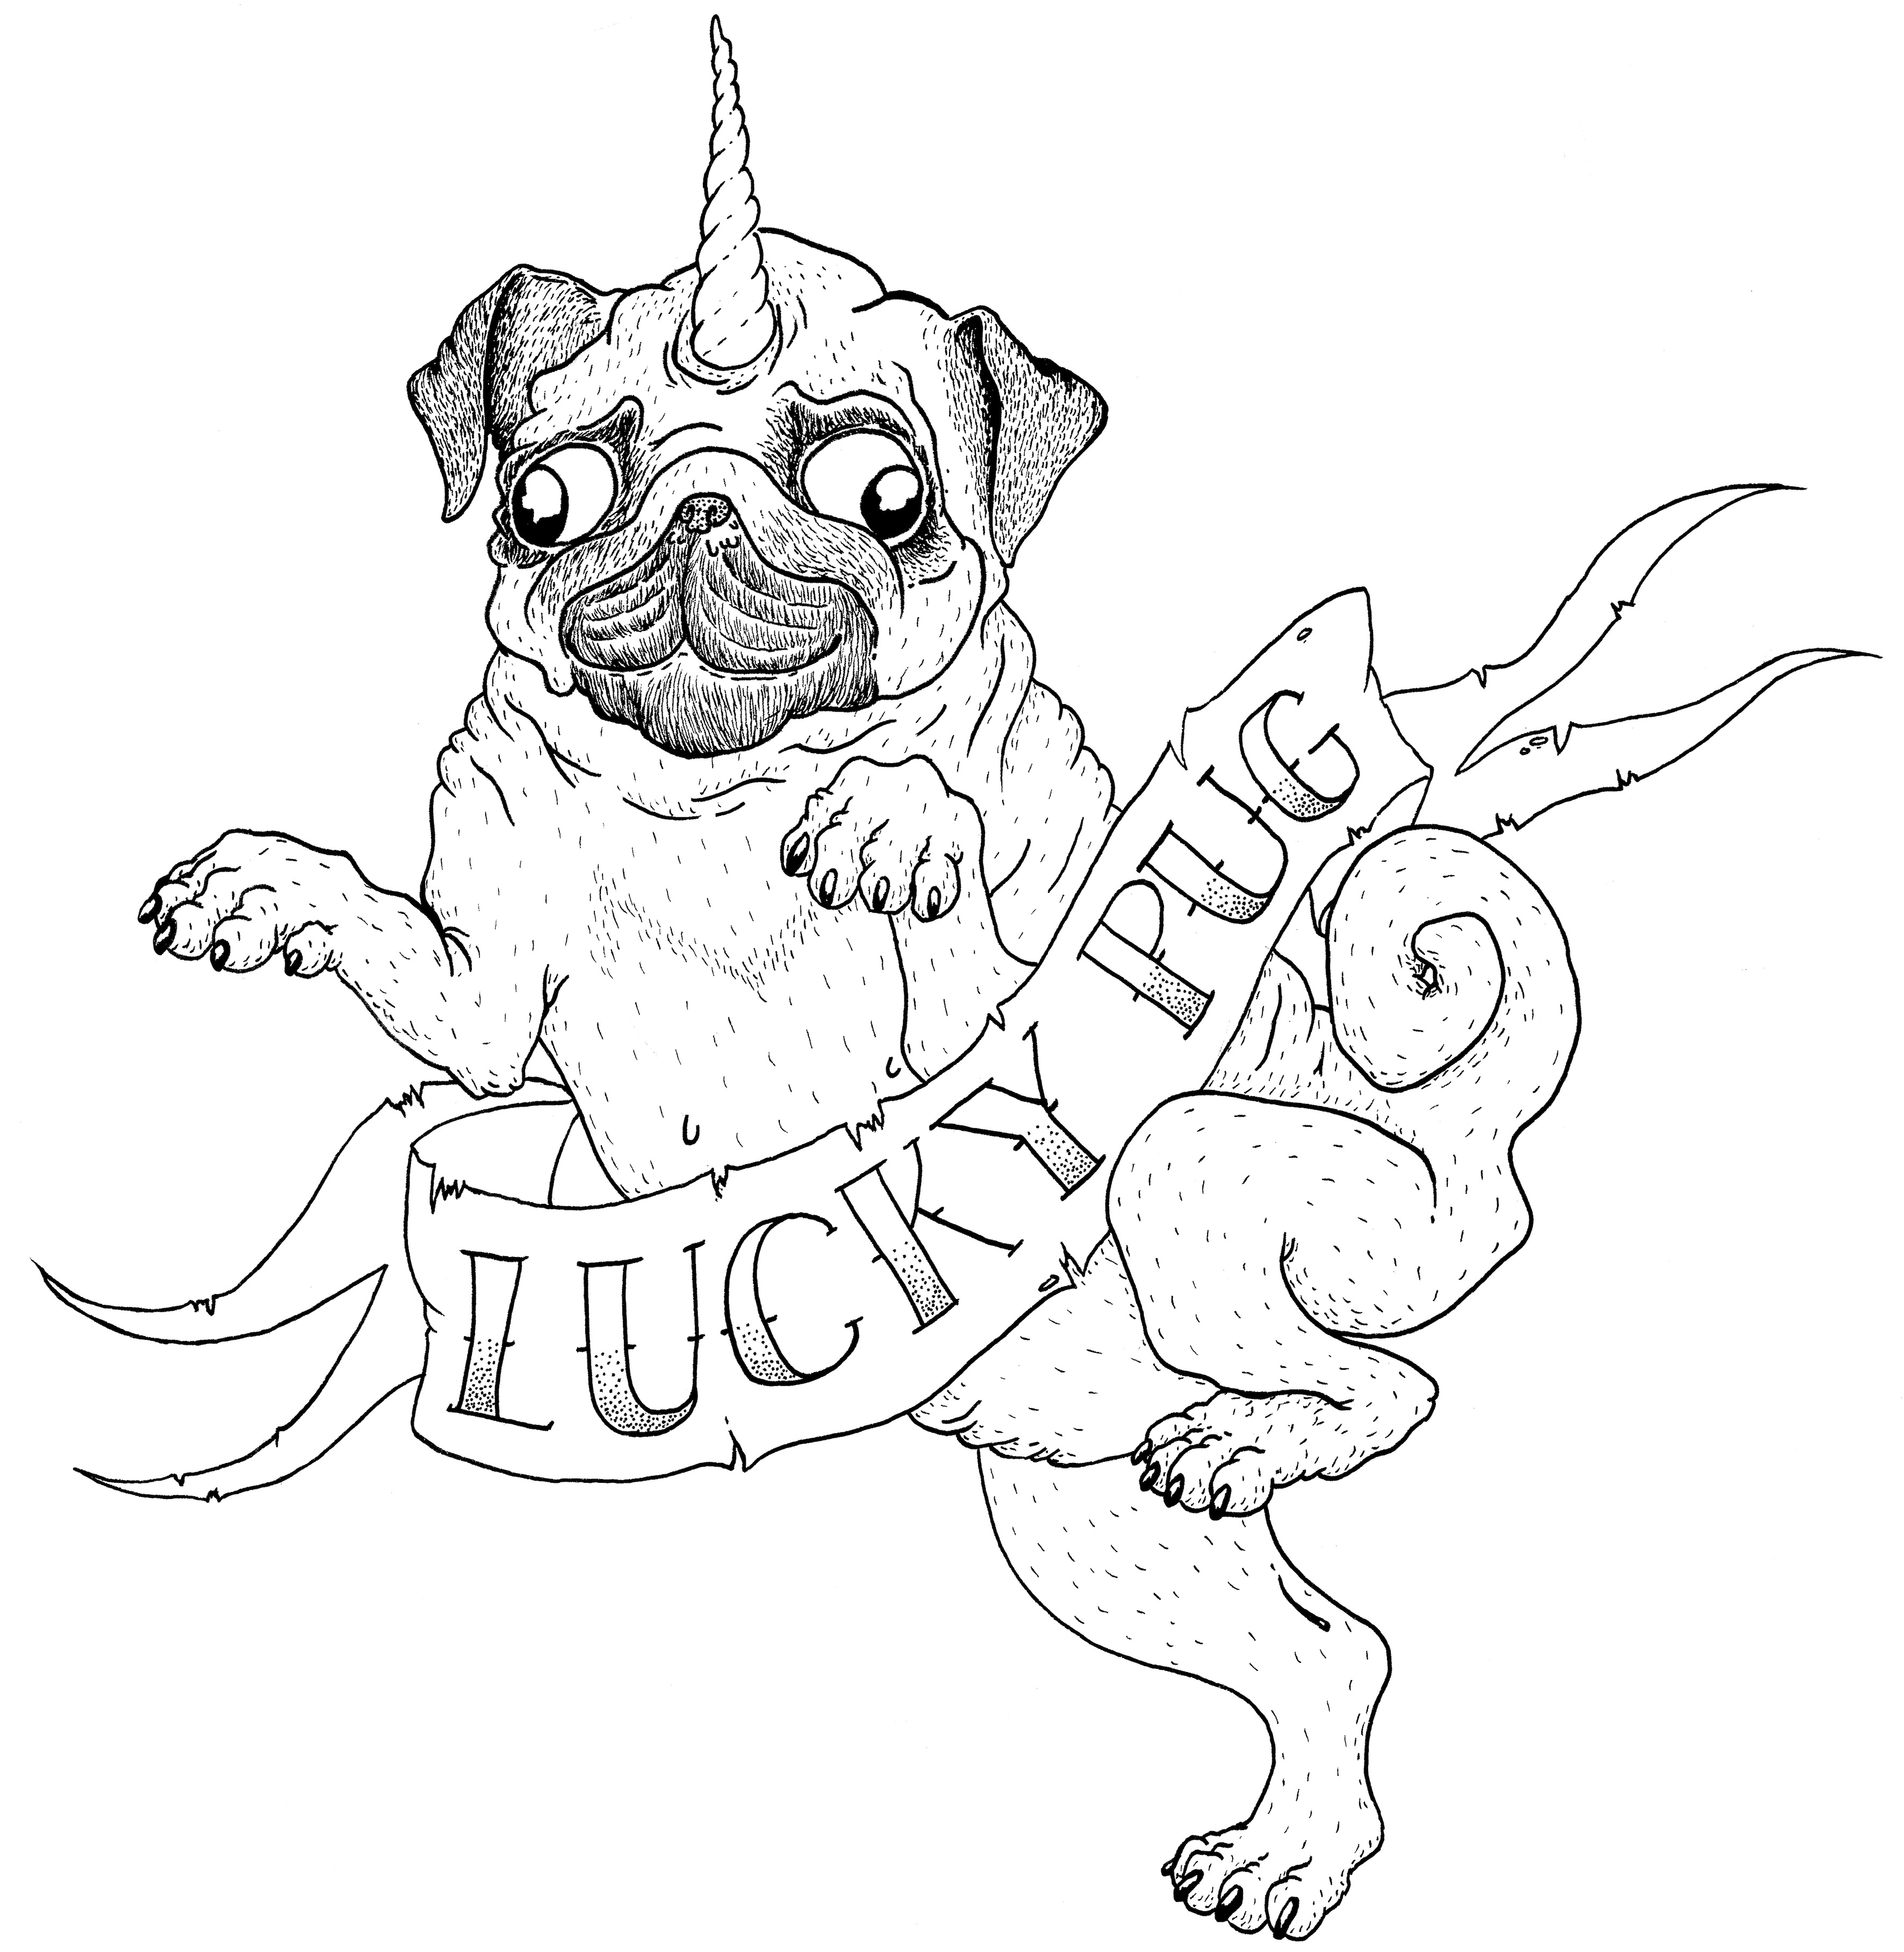 How To Draw Easy Cute Drawings Pugs Sketch Coloring Page A